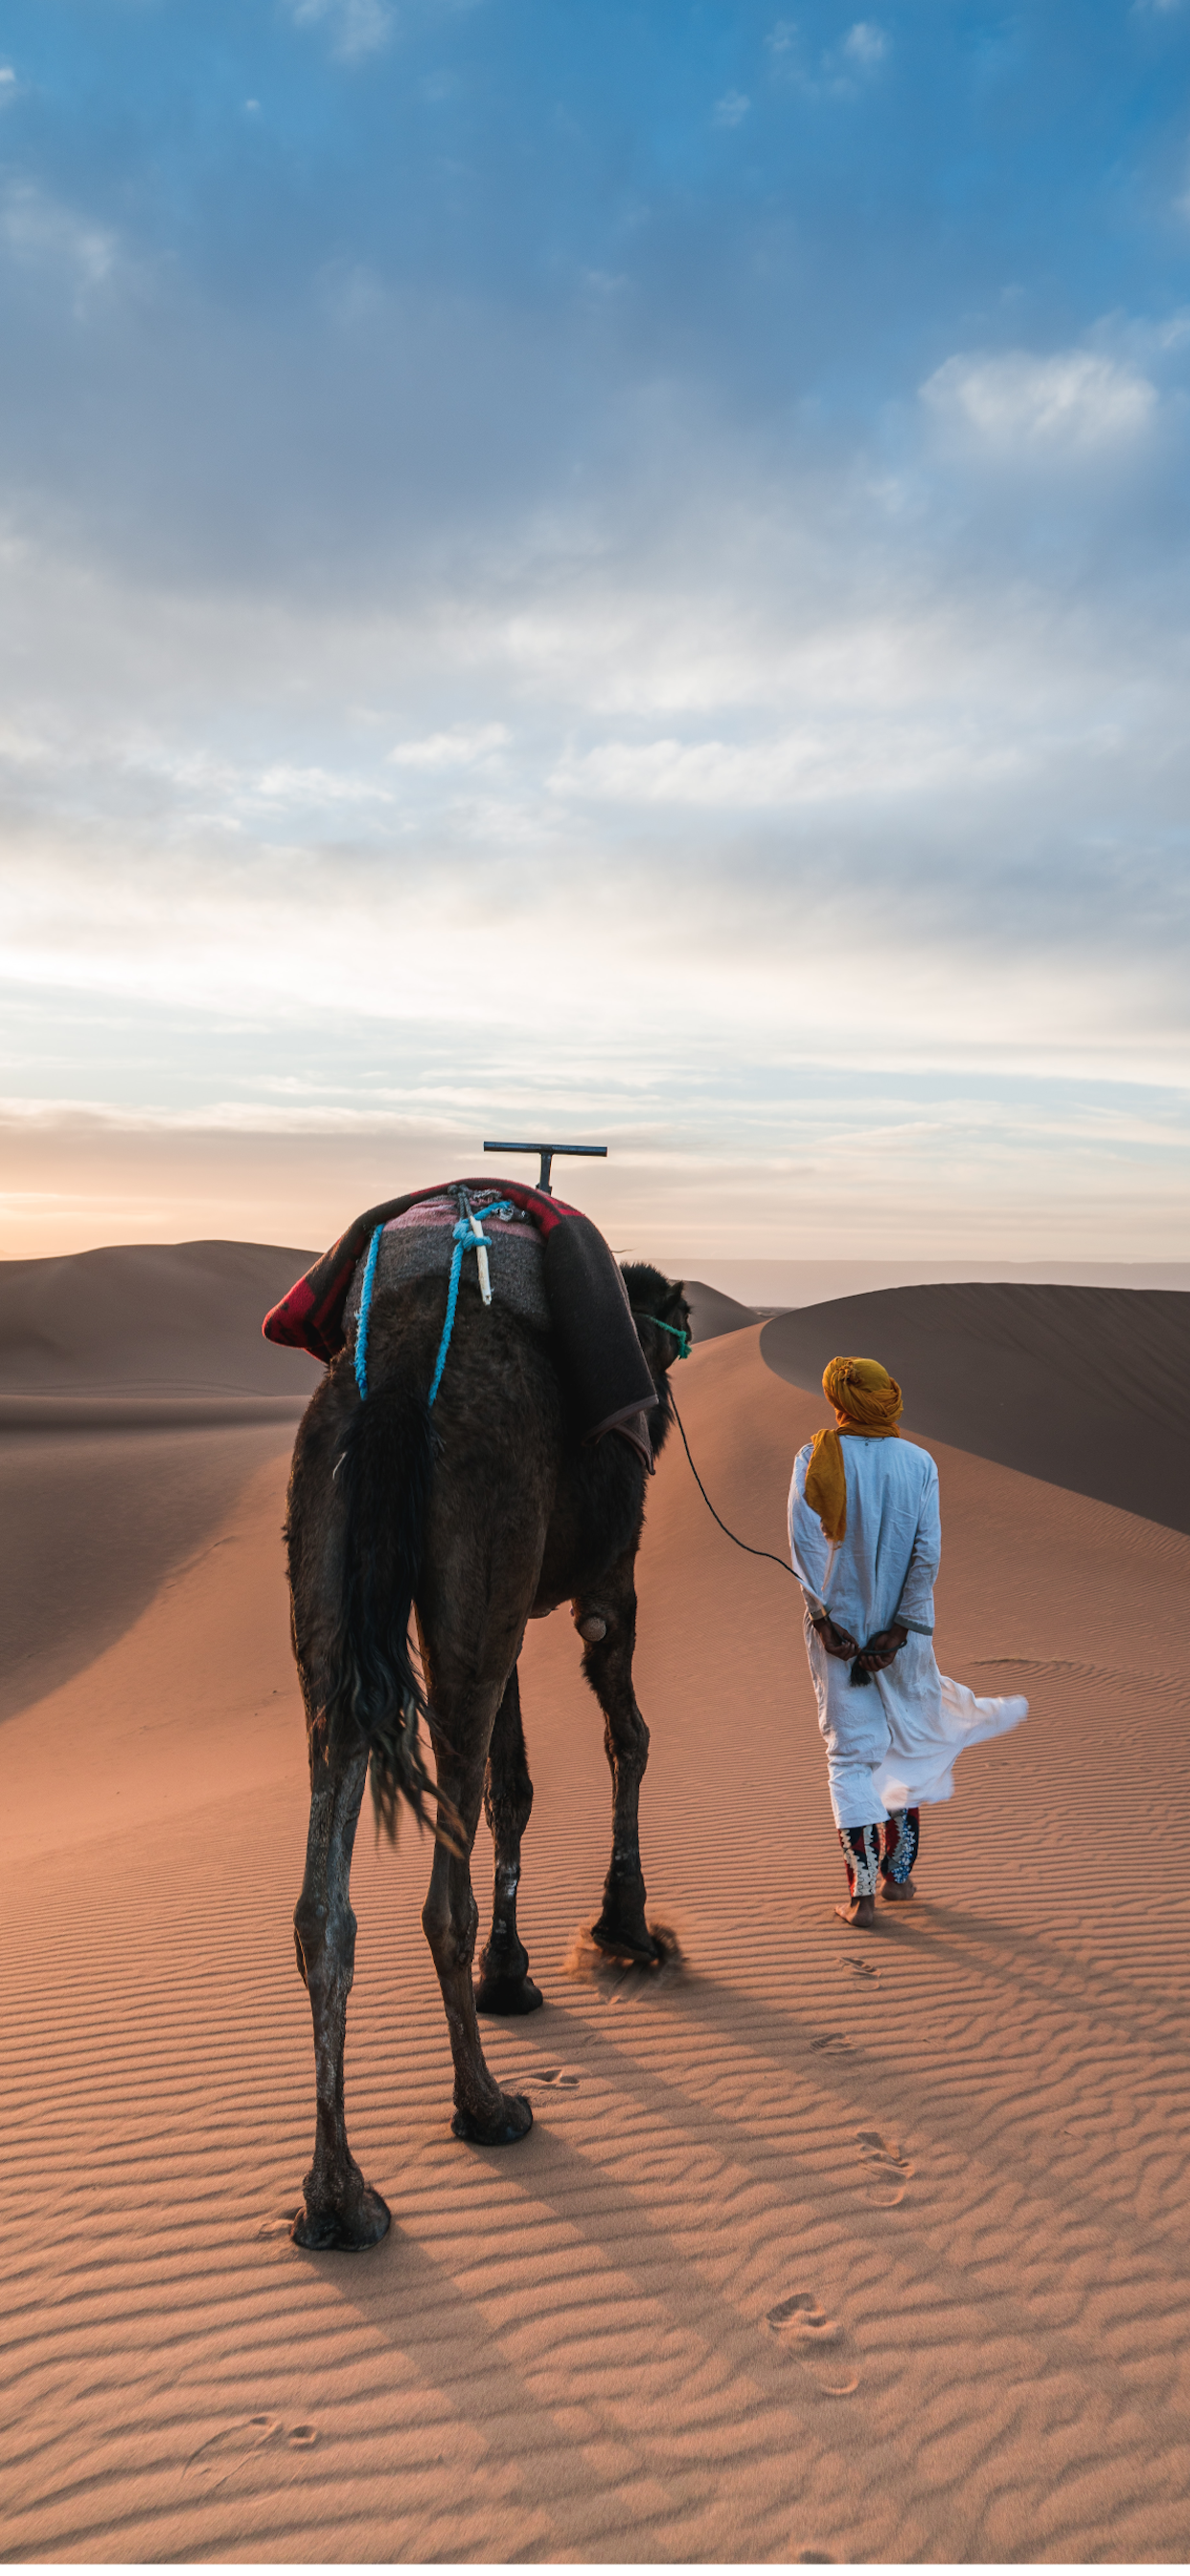 iPhone wallpaper morocco camel Fonds d'écran iPhone du 09/08/2019